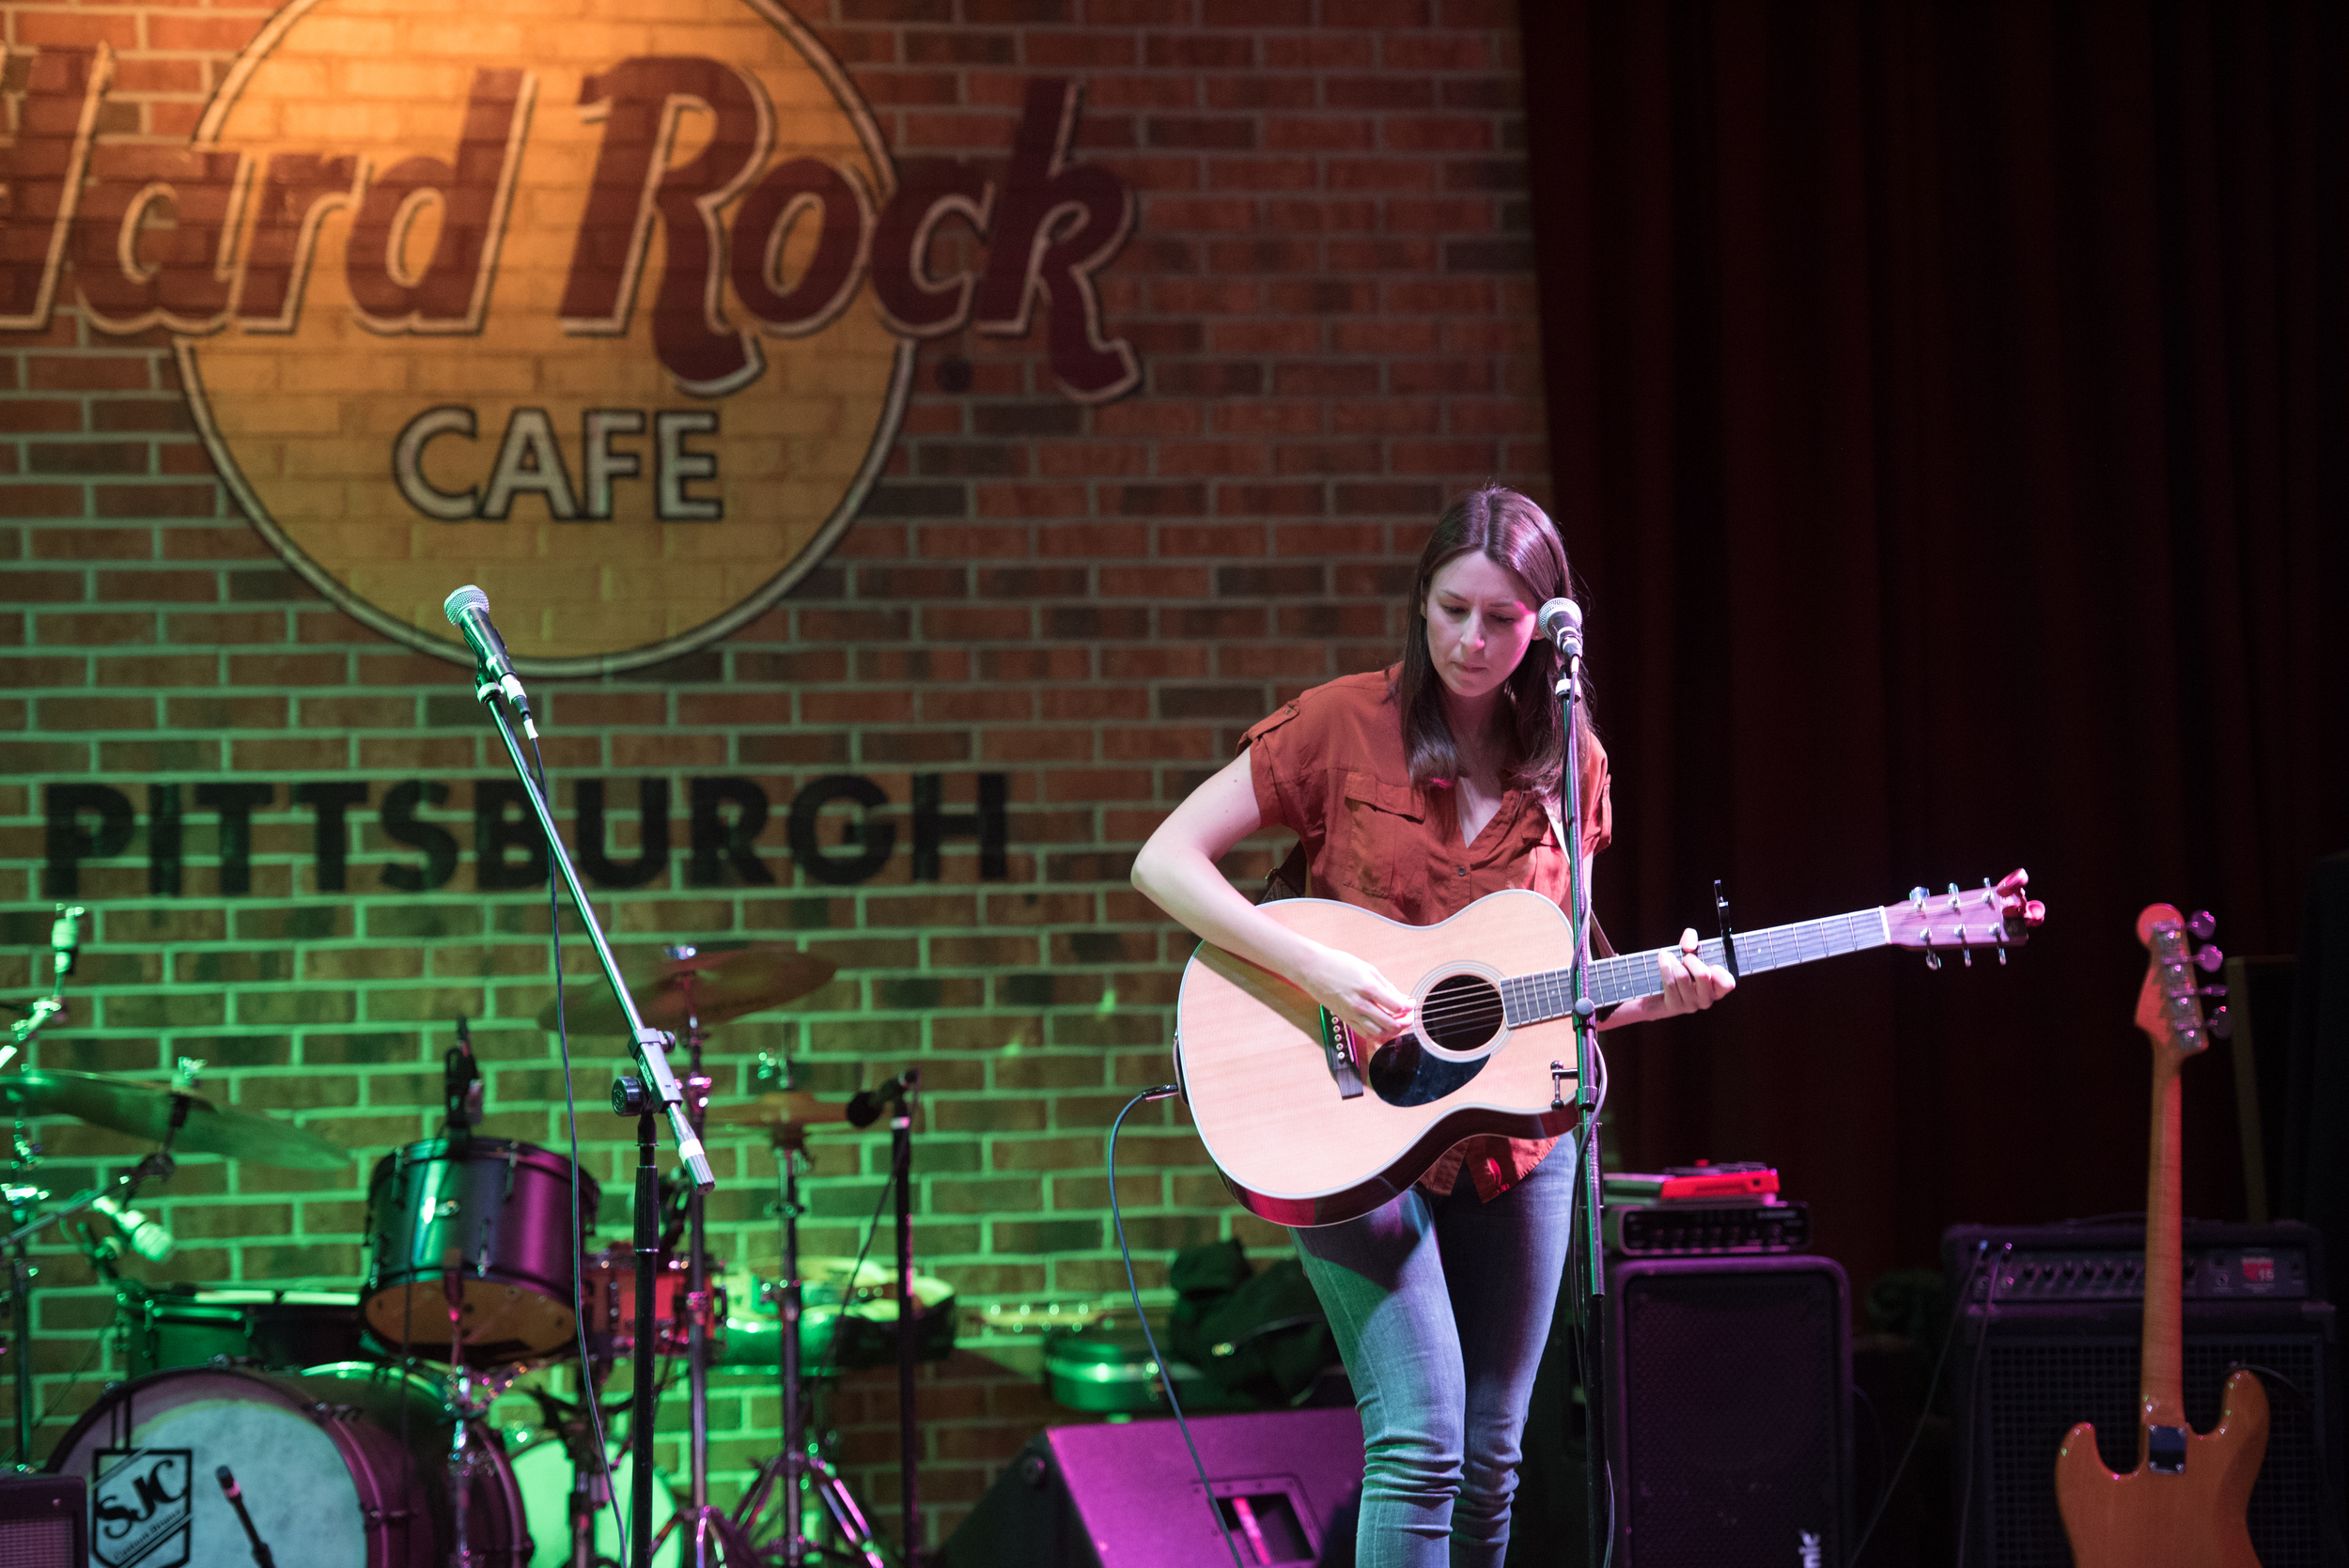 Cure Rock - Hard Rock Cafe - 3.26.15 - 028.jpg